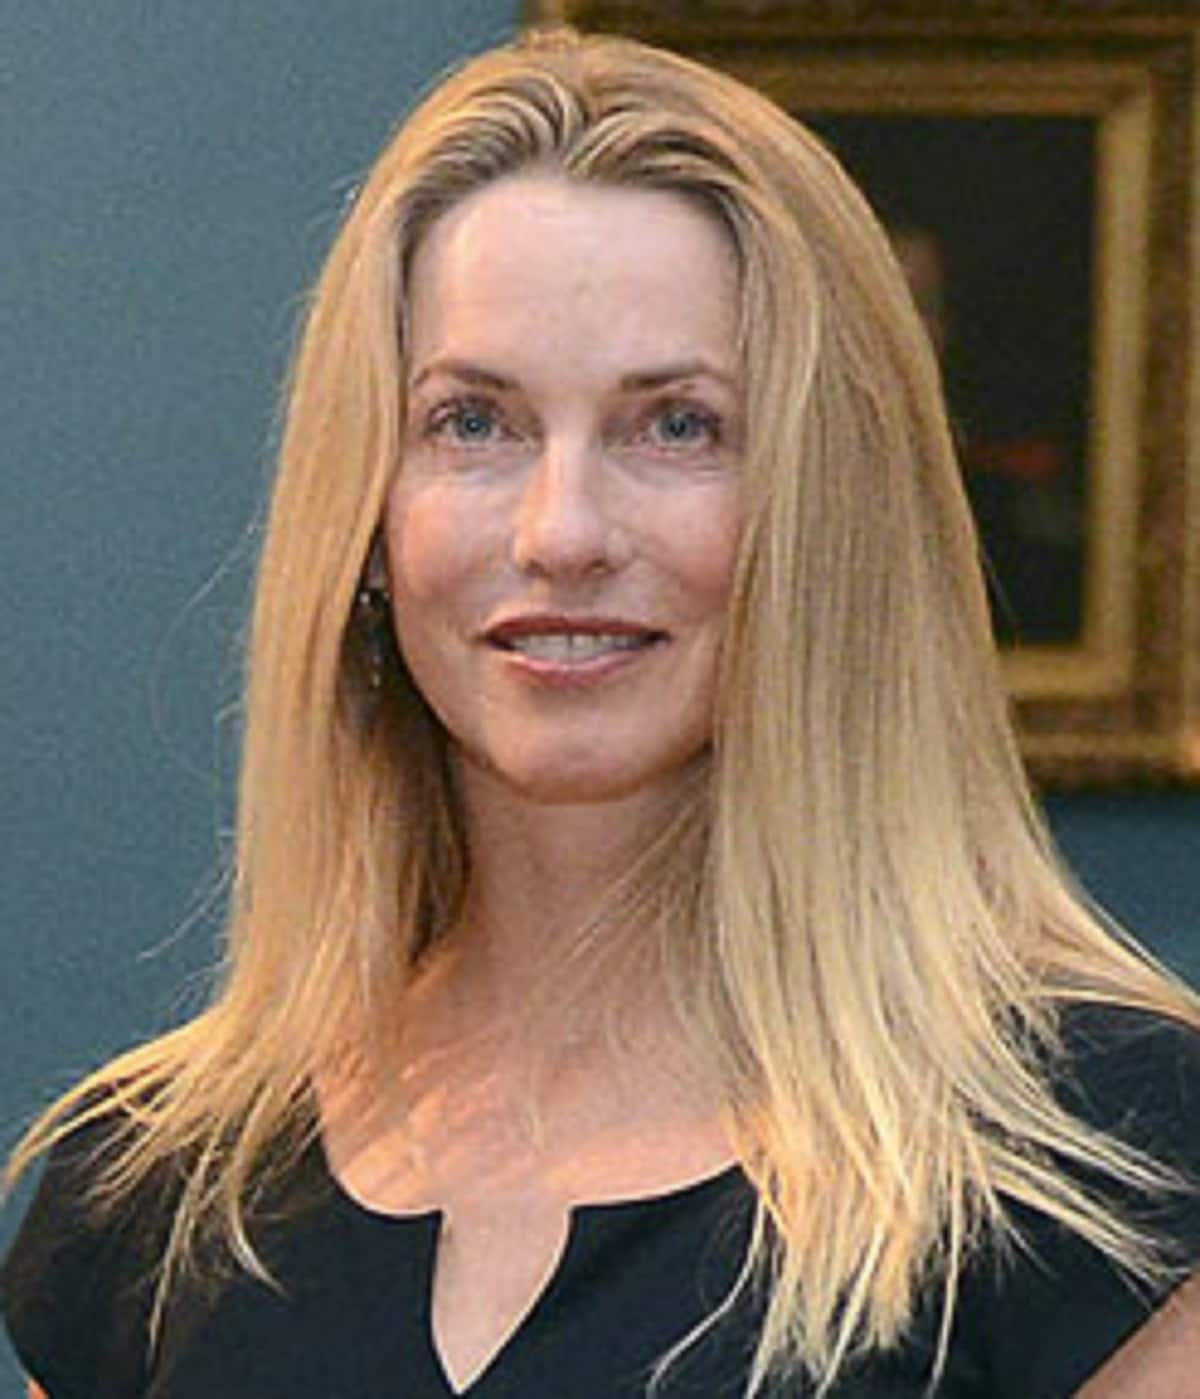 Entrepreneur and philanthropist <strong>Laurene Powell Jobs</strong>, widow of Apple's Steve Jobs, funds a variety of nonprofit causes and invests in for-profit ventures through her own similarly structured entity, Emerson Collective. (Source: Wikimedia Commons)